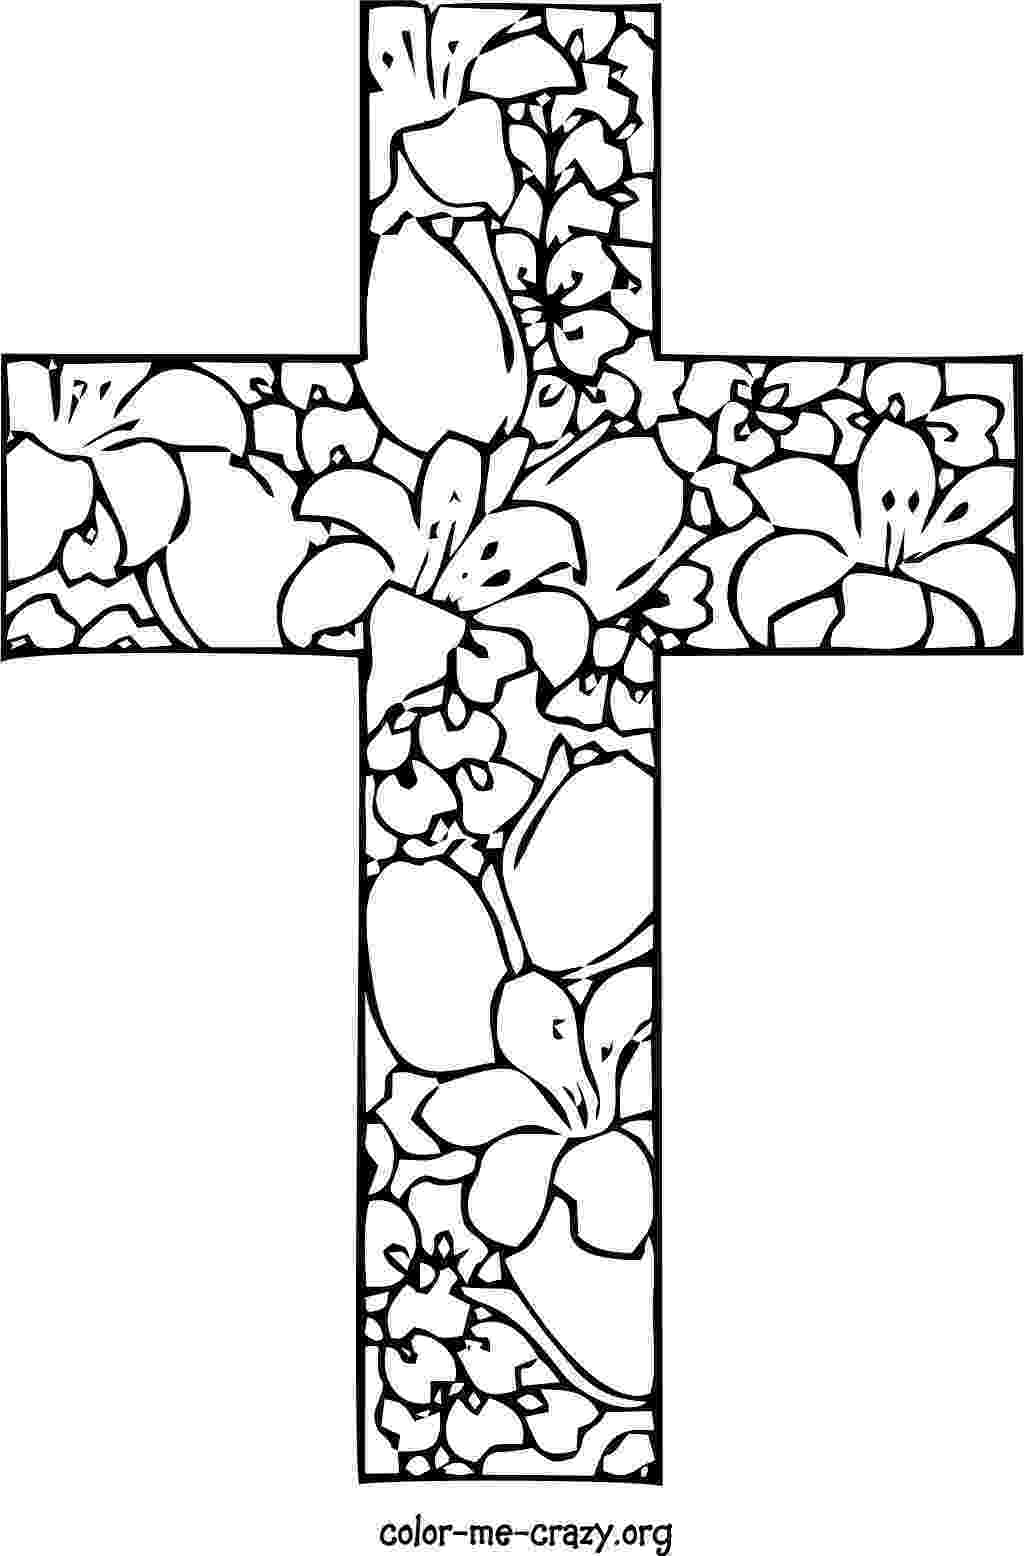 easter coloring sheets free printable christian religious easter coloring pages best coloring pages for kids sheets coloring easter free printable christian